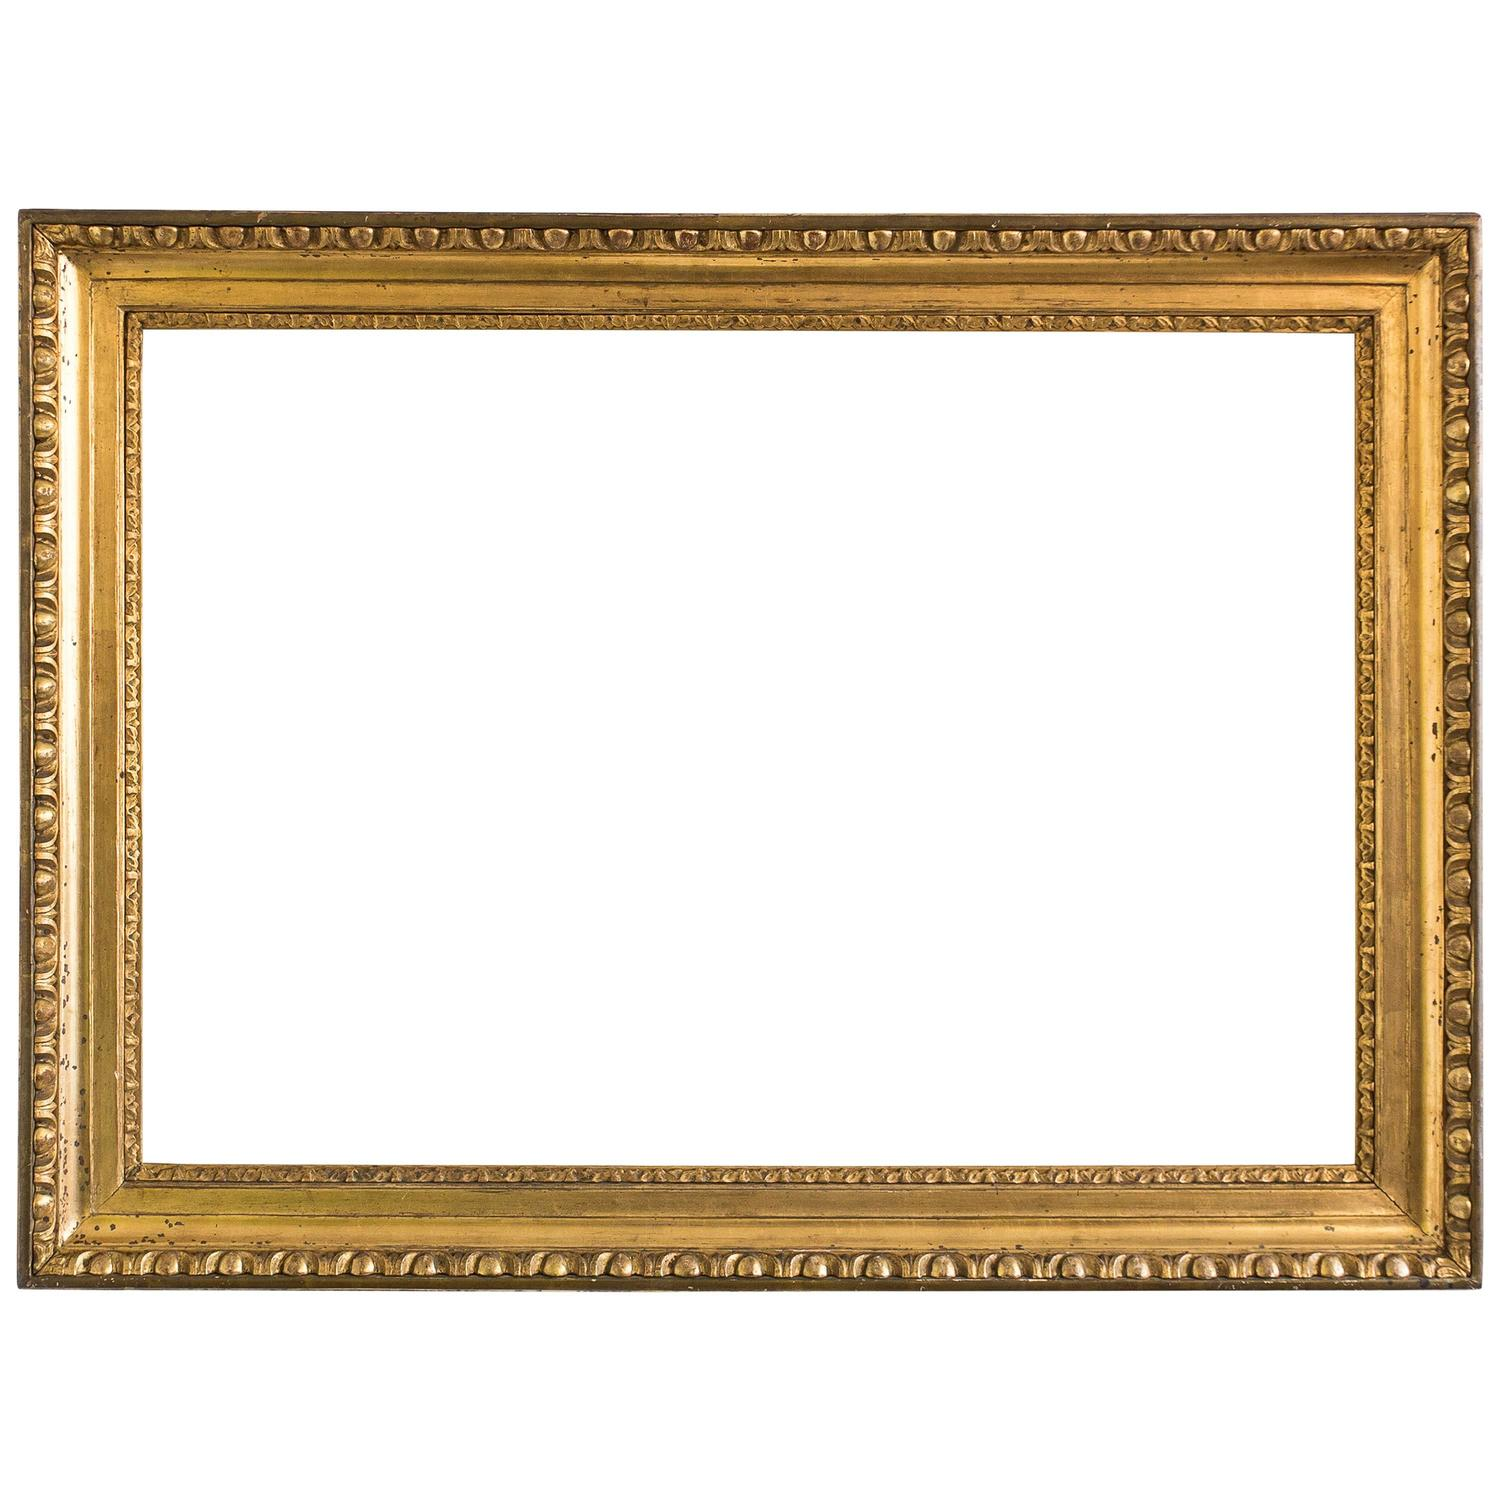 Picture frames black plastic photo frames with silver inner picture frames golden biedermeier frame egg and dart austria circa 1825 for sale at jeuxipadfo Image collections